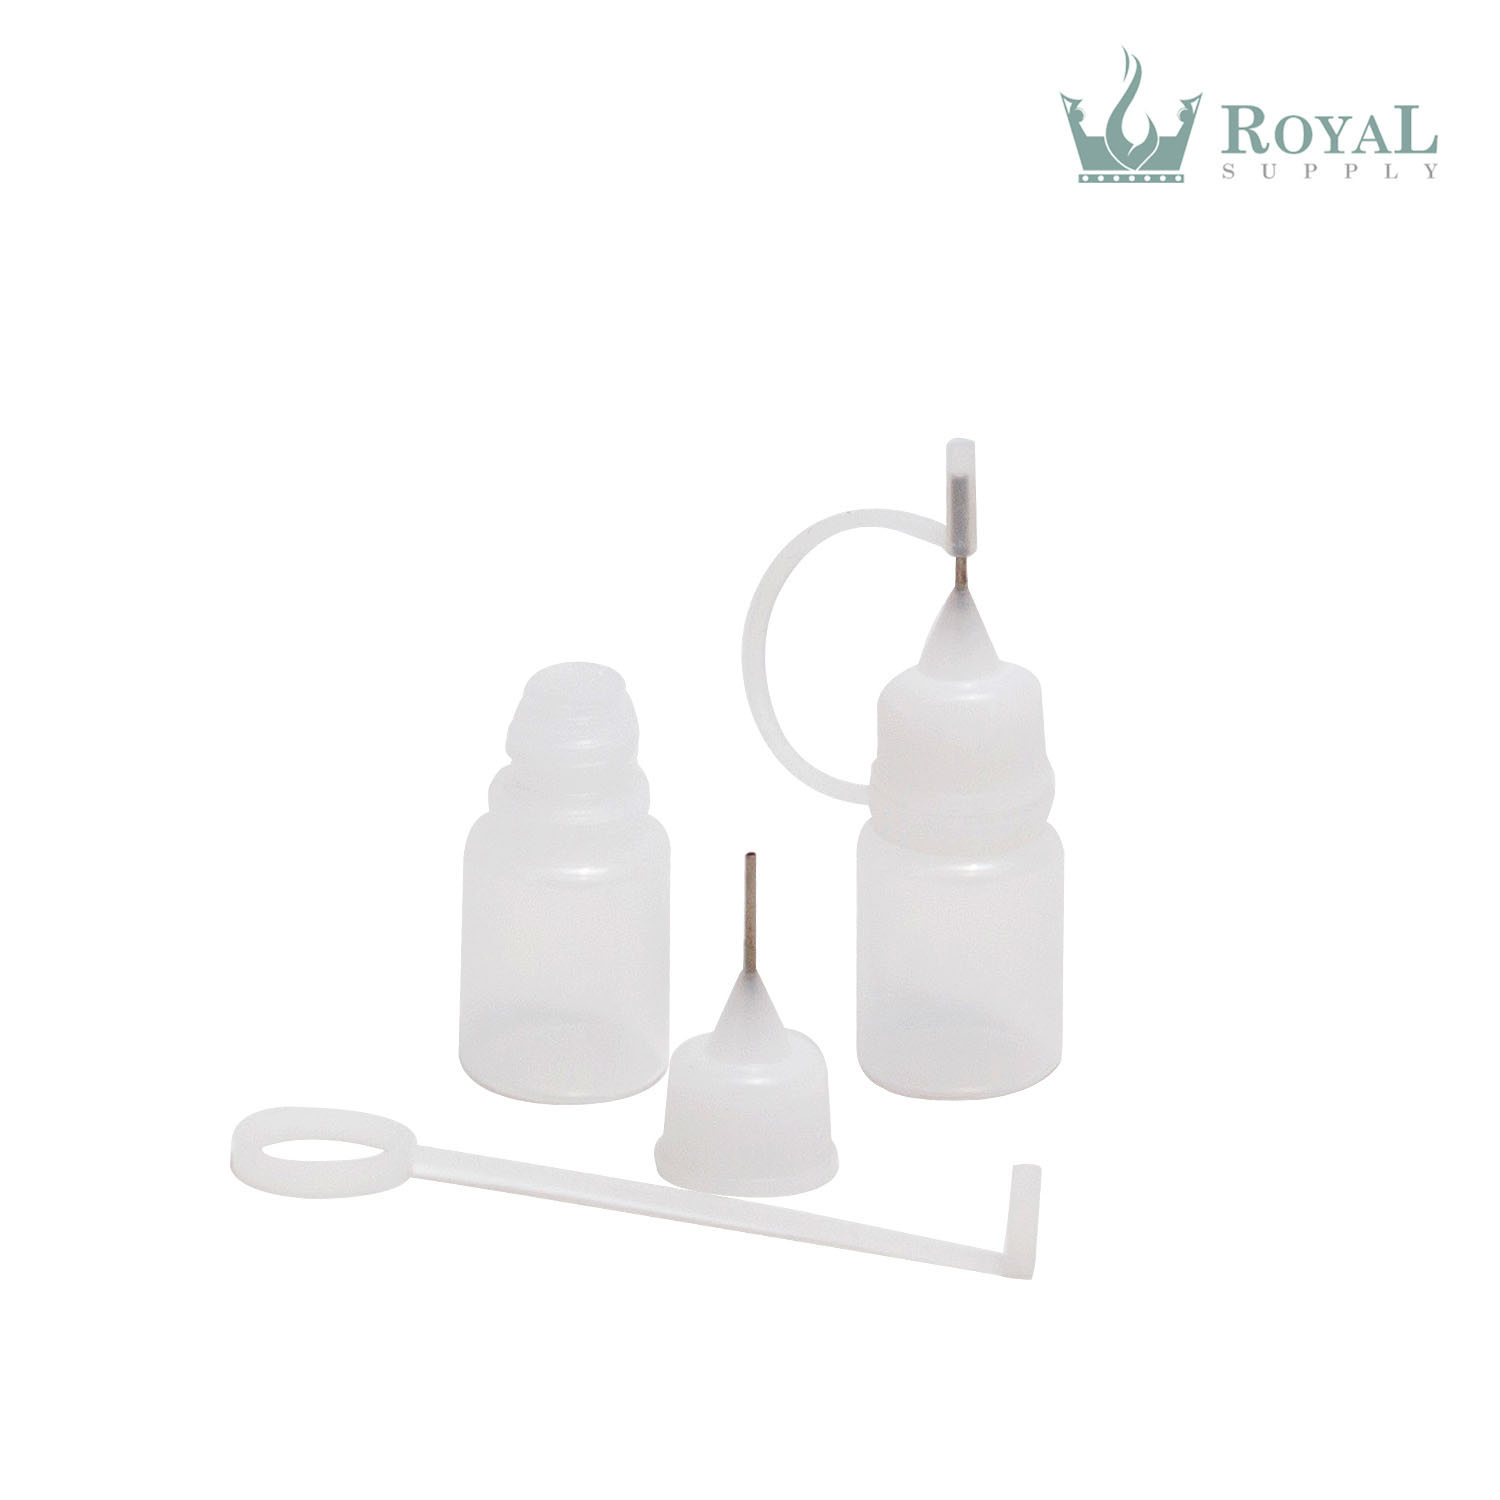 5 ml Needle Tip Dropper Bottle